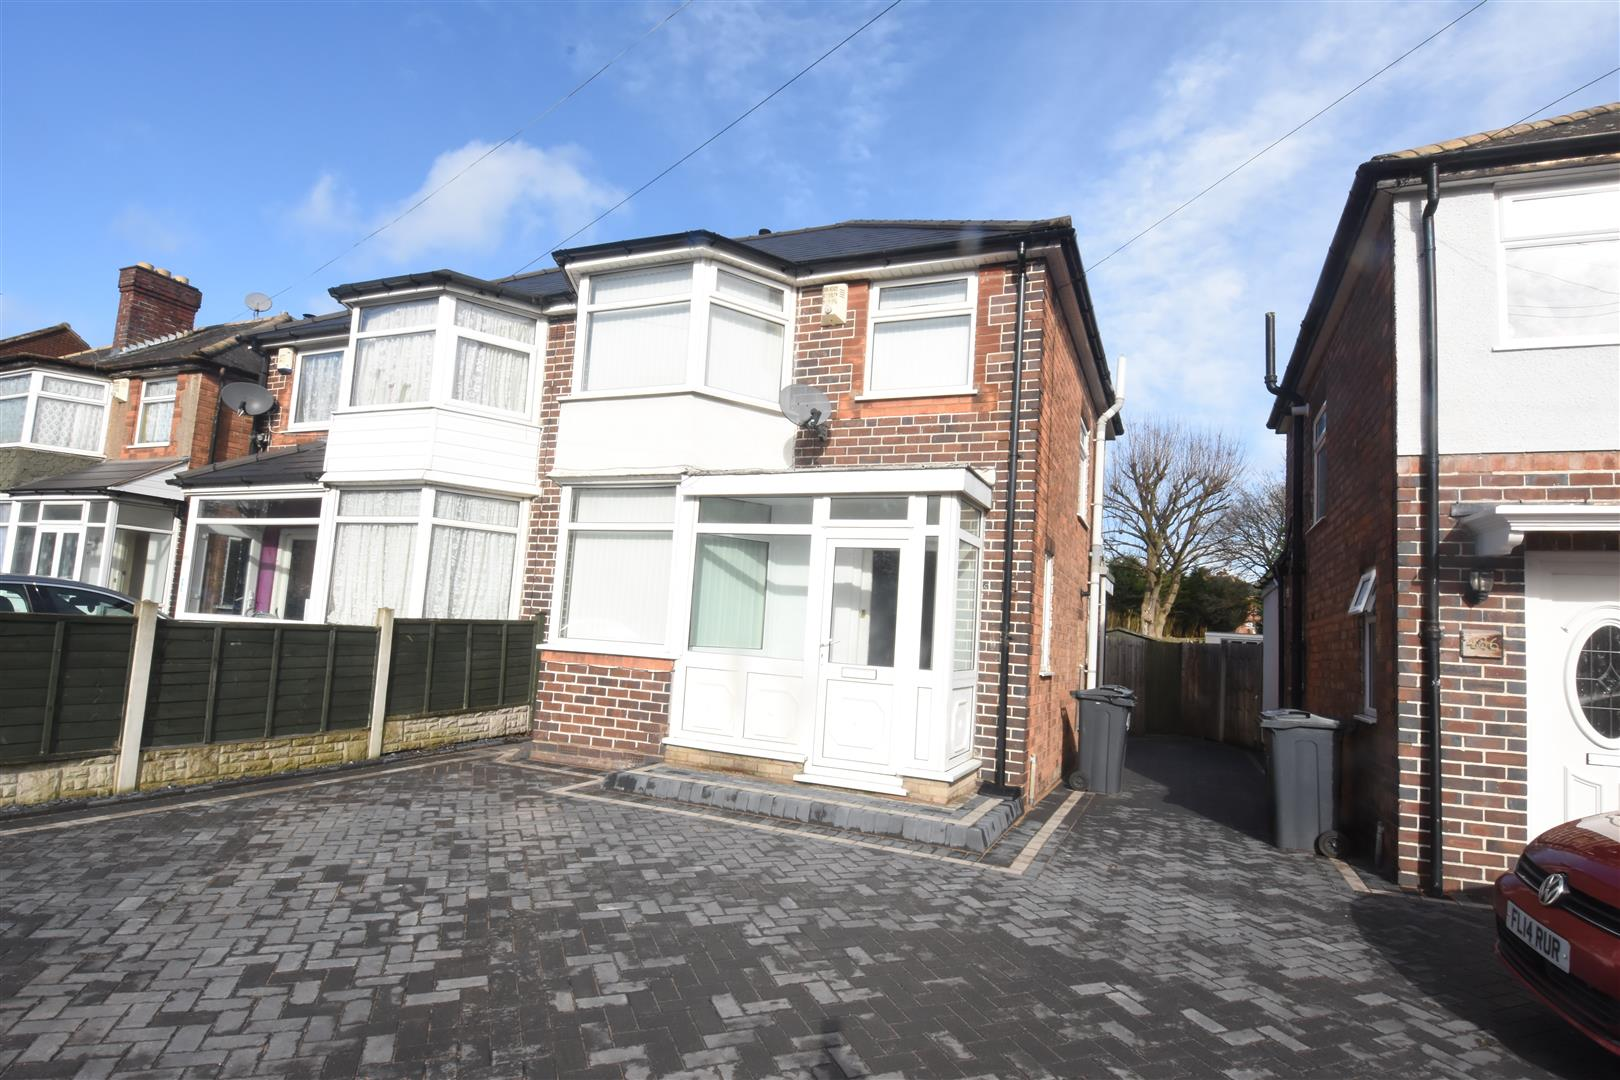 3 bed house for sale in Bromford Road, Hodge Hill, Birmingham, B36